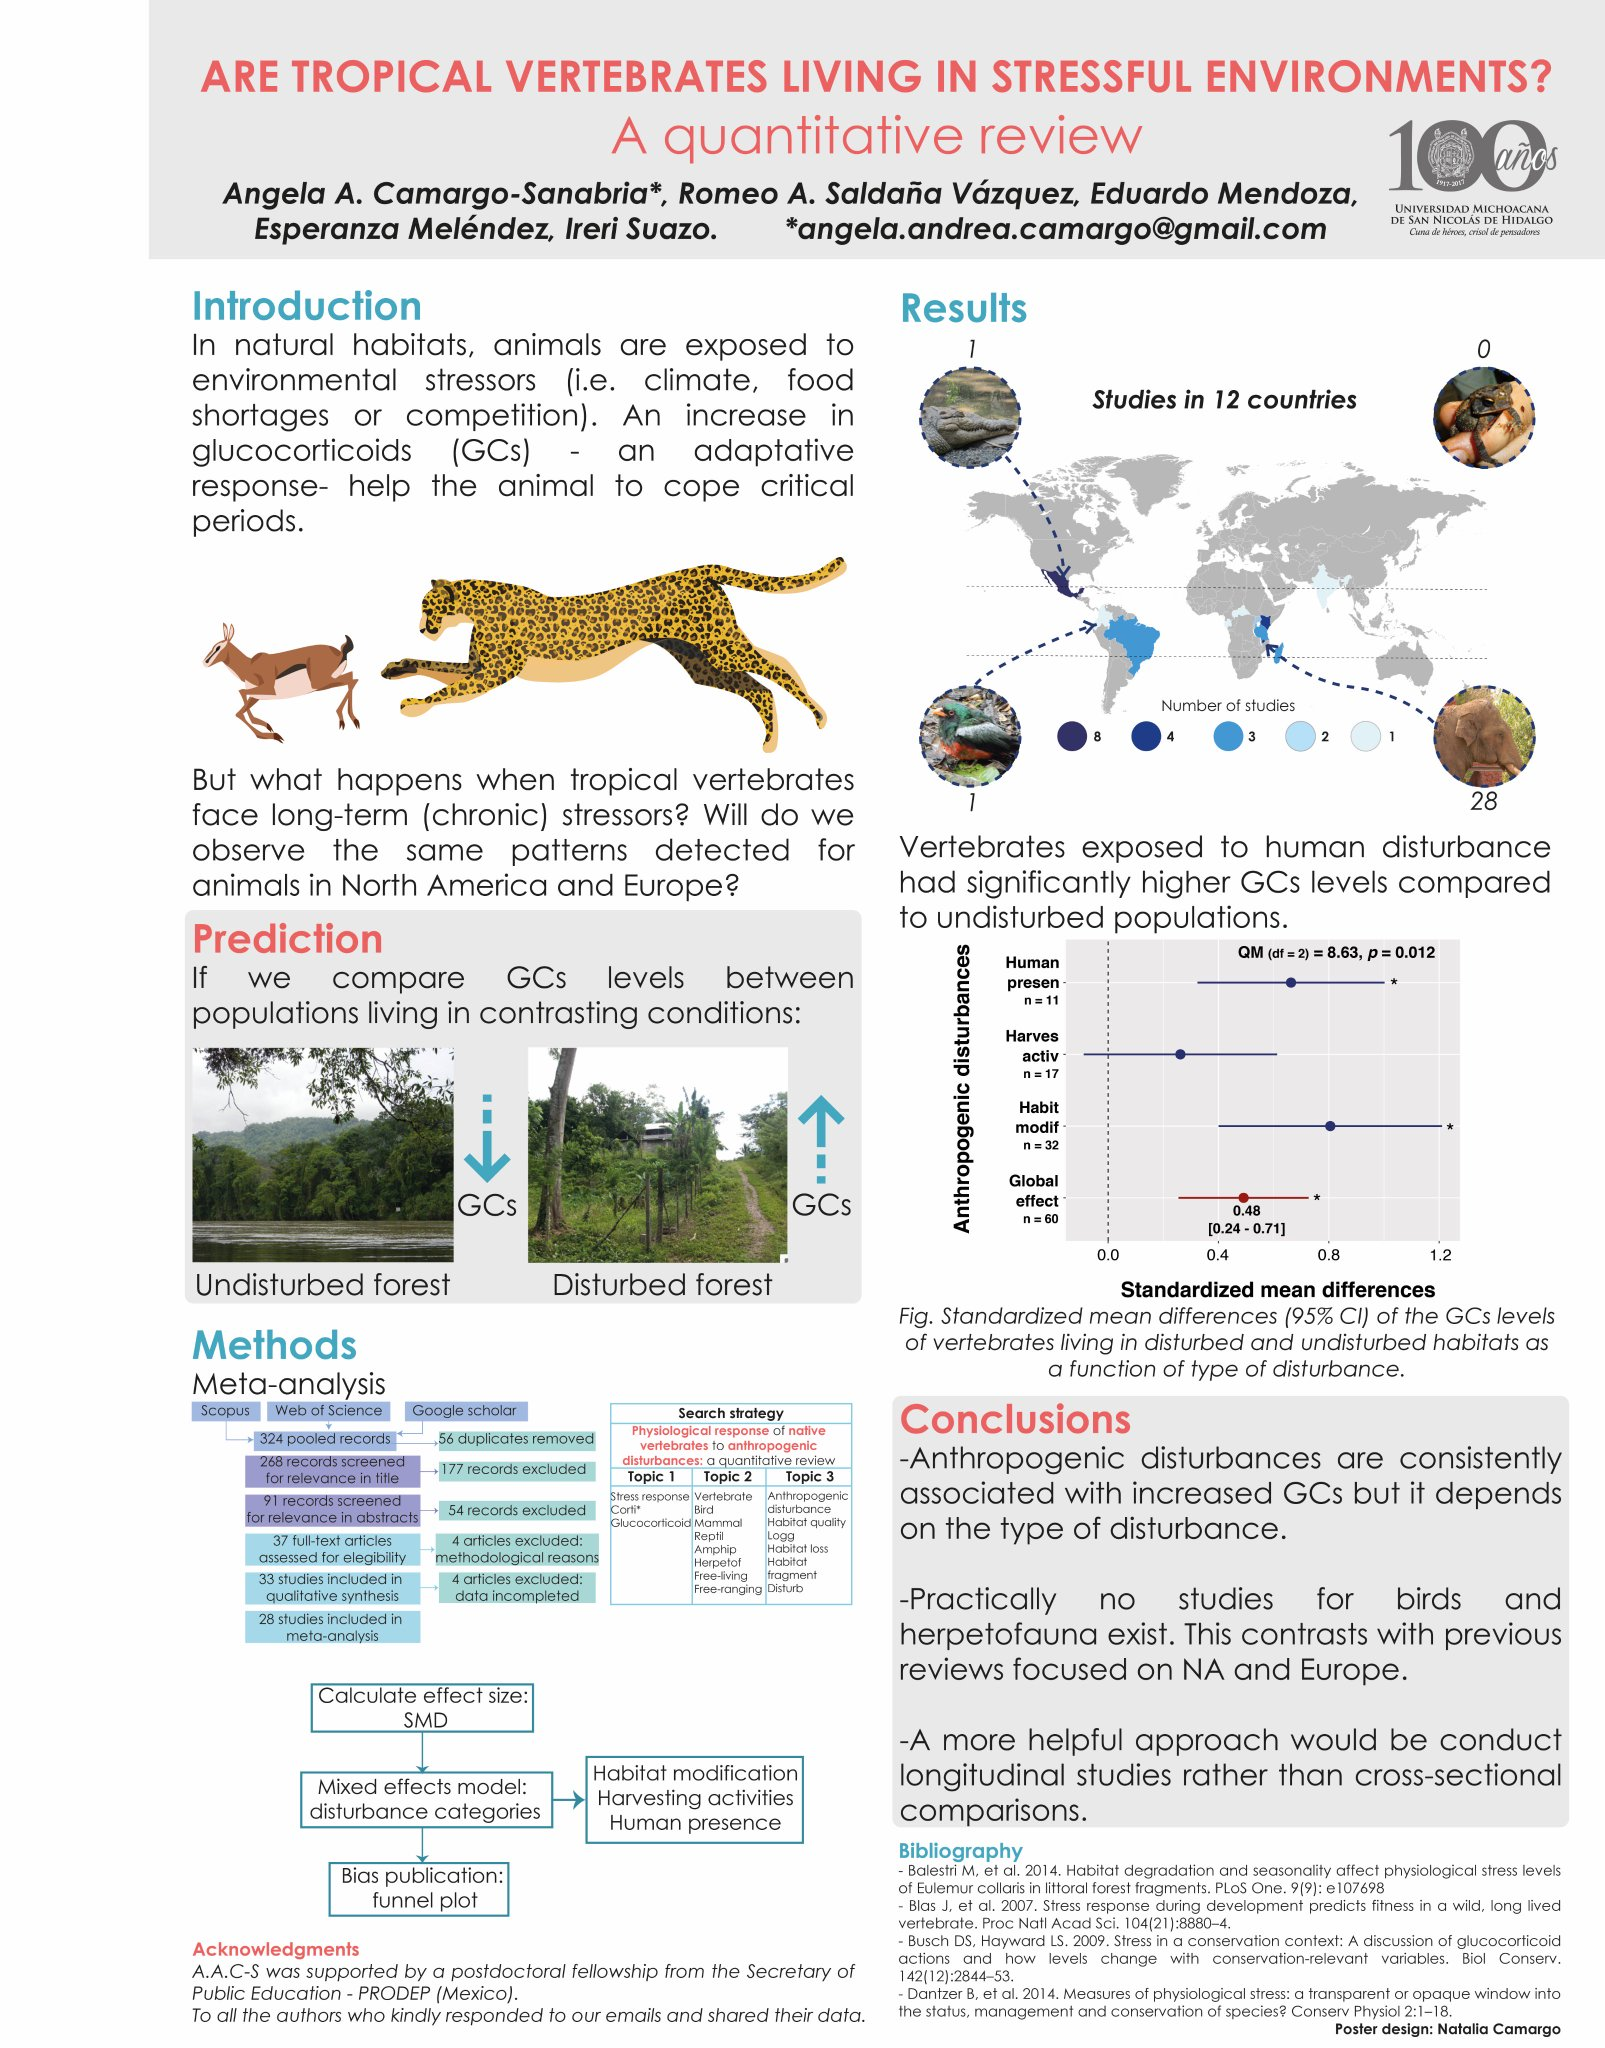 Are tropical vertebrates living in stressful environments?: a quantitative review. My poster in #ICCB2017 https://t.co/Pbx0RQ0mRN